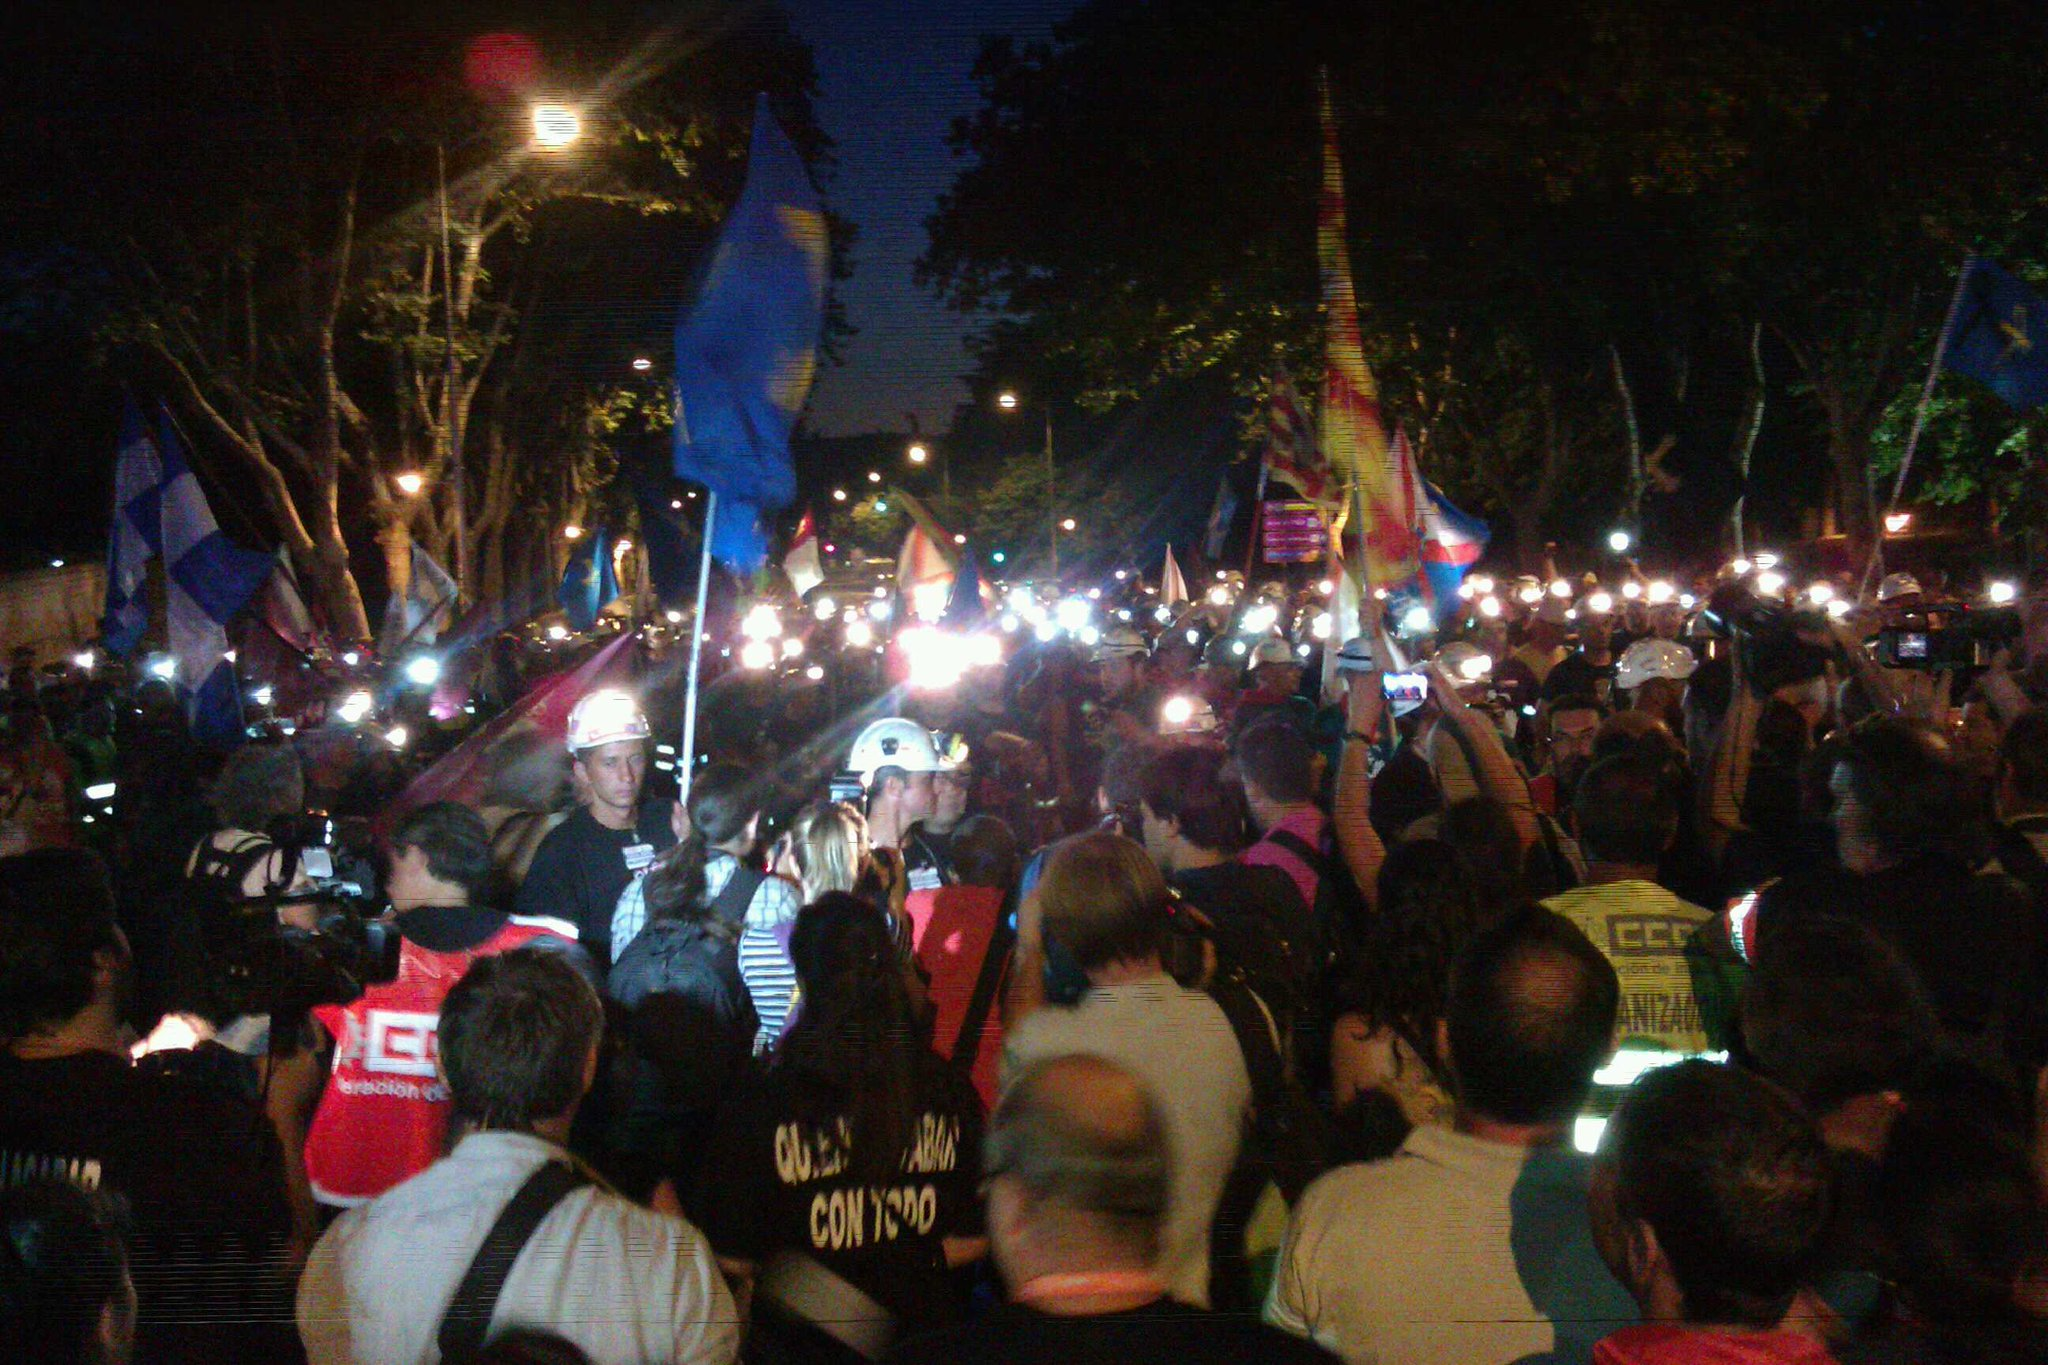 Amazing, moving stuff from #nocheminera in Madrid tonight. & finally some pictures of the miners: http://t.co/S8v9VcNw (via @atlante83)